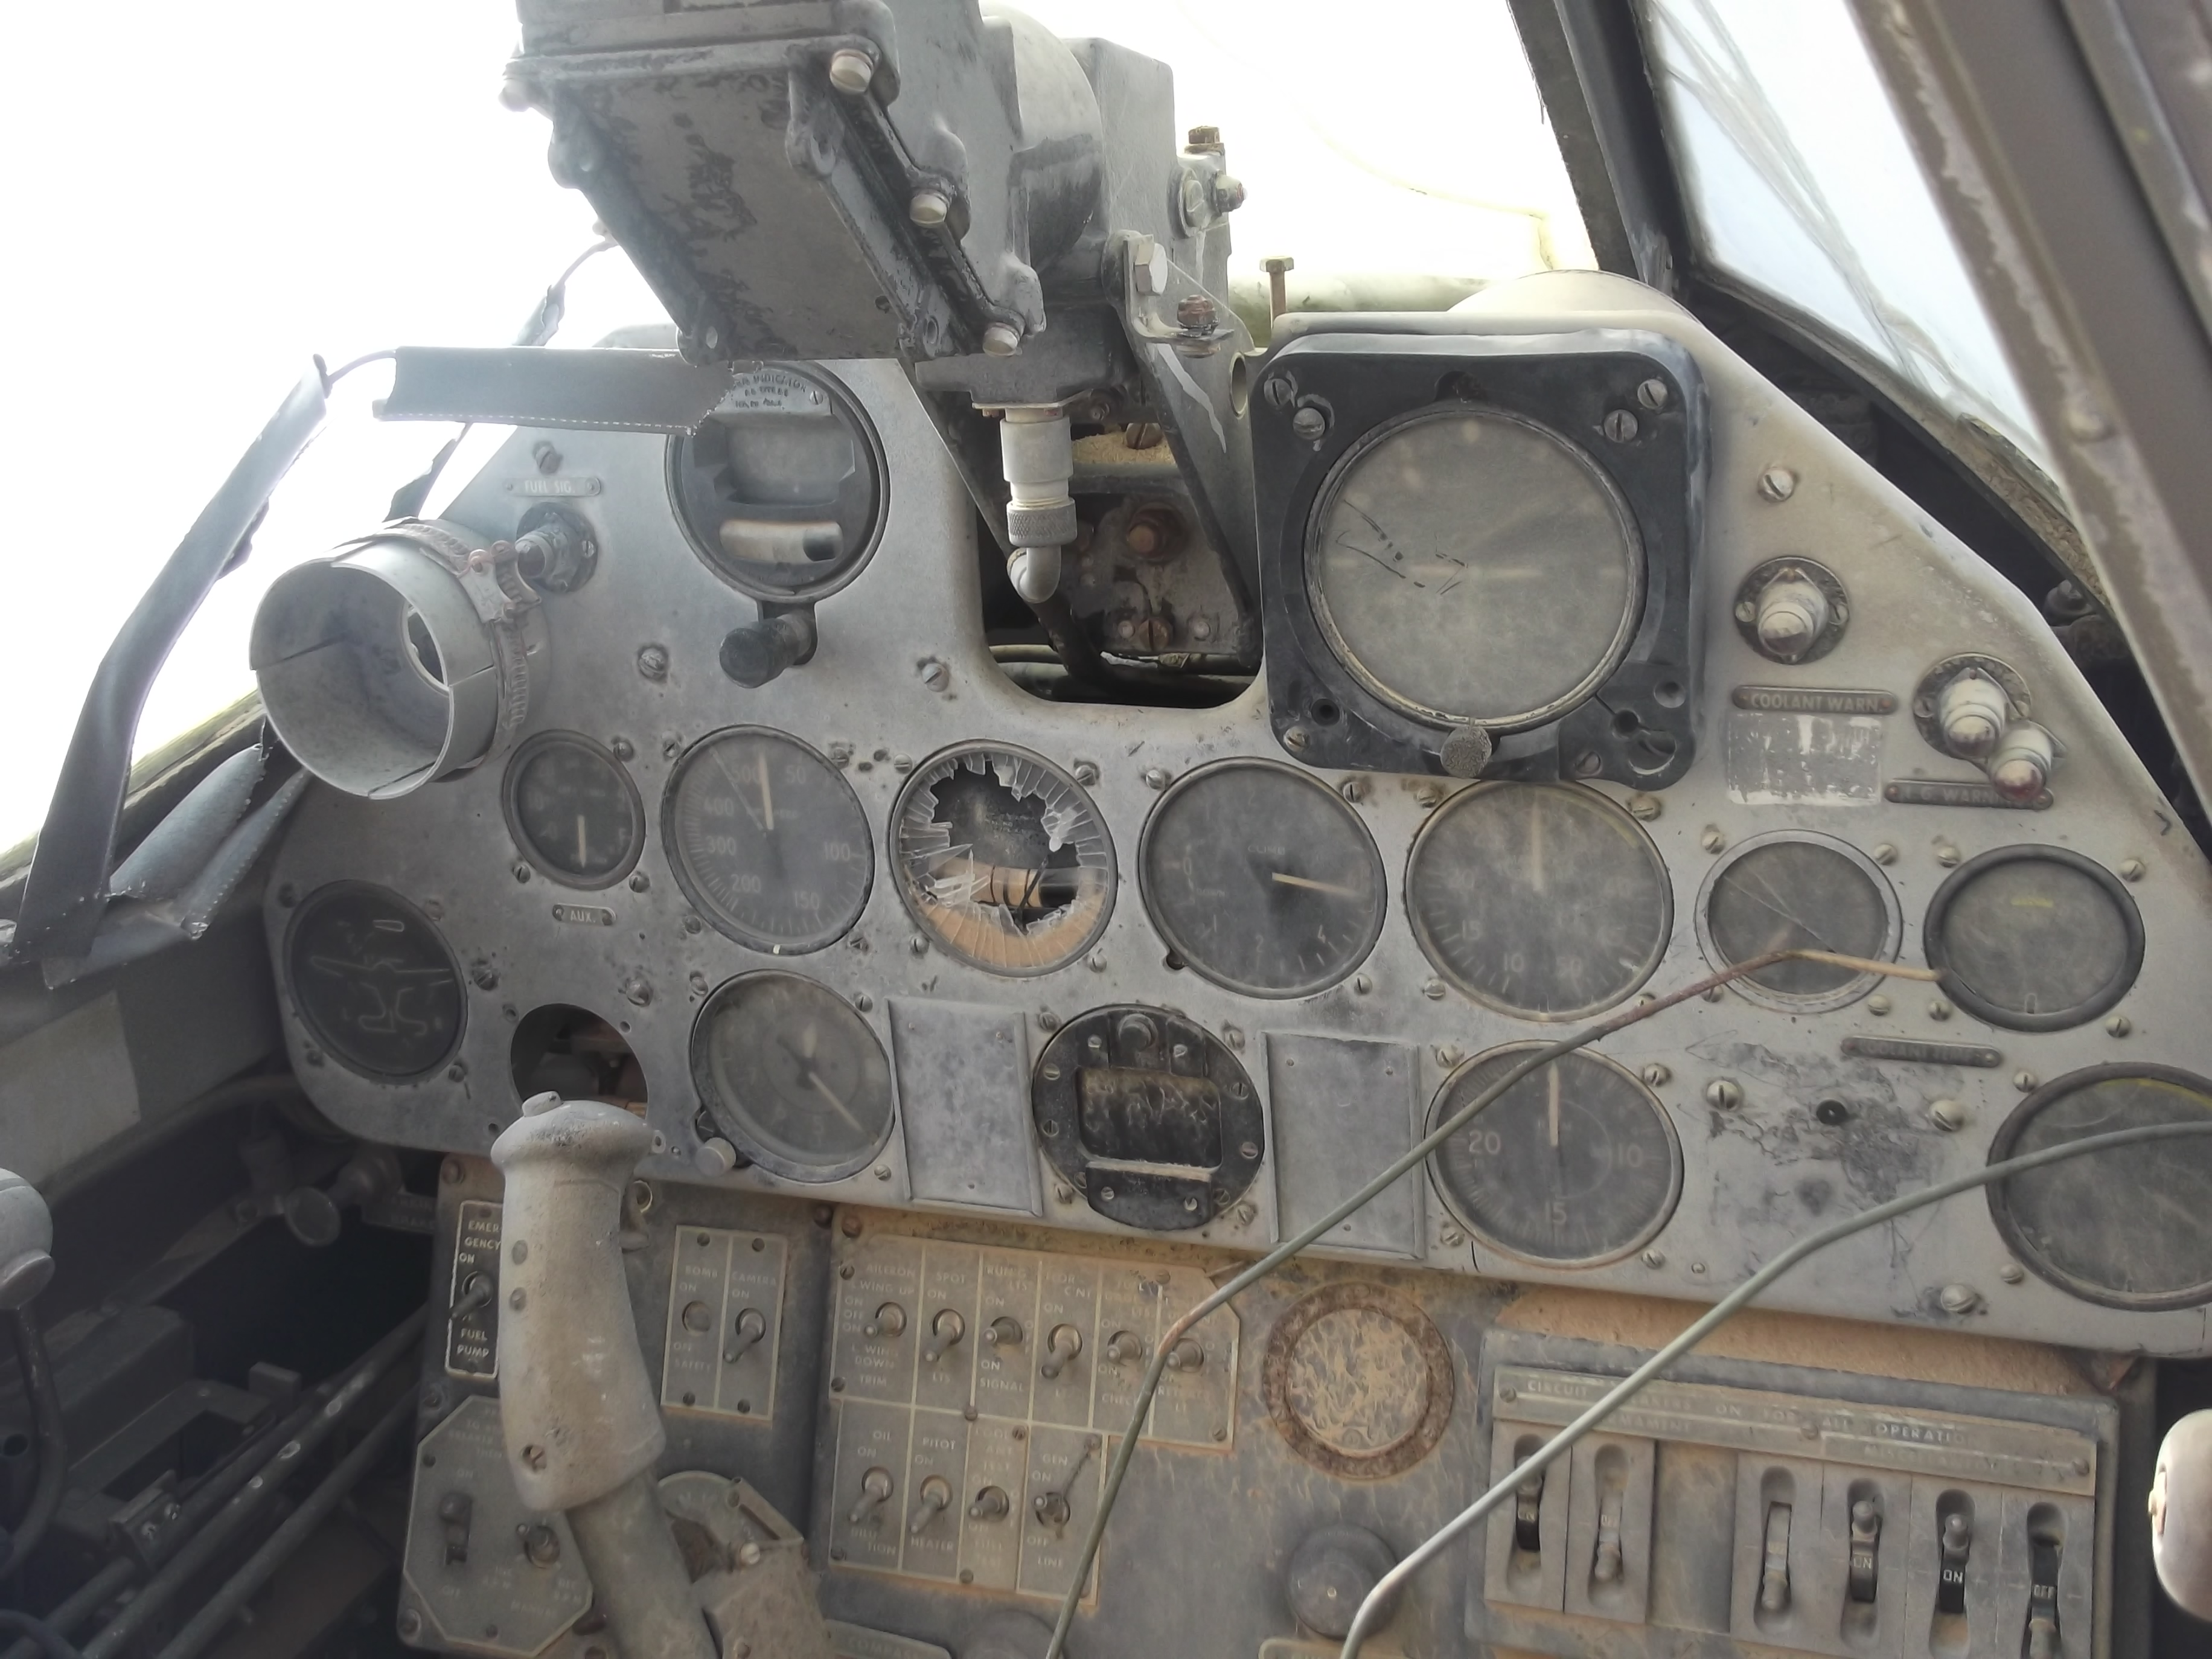 The History Blog » Blog Archive » WWII fighter plane found ...